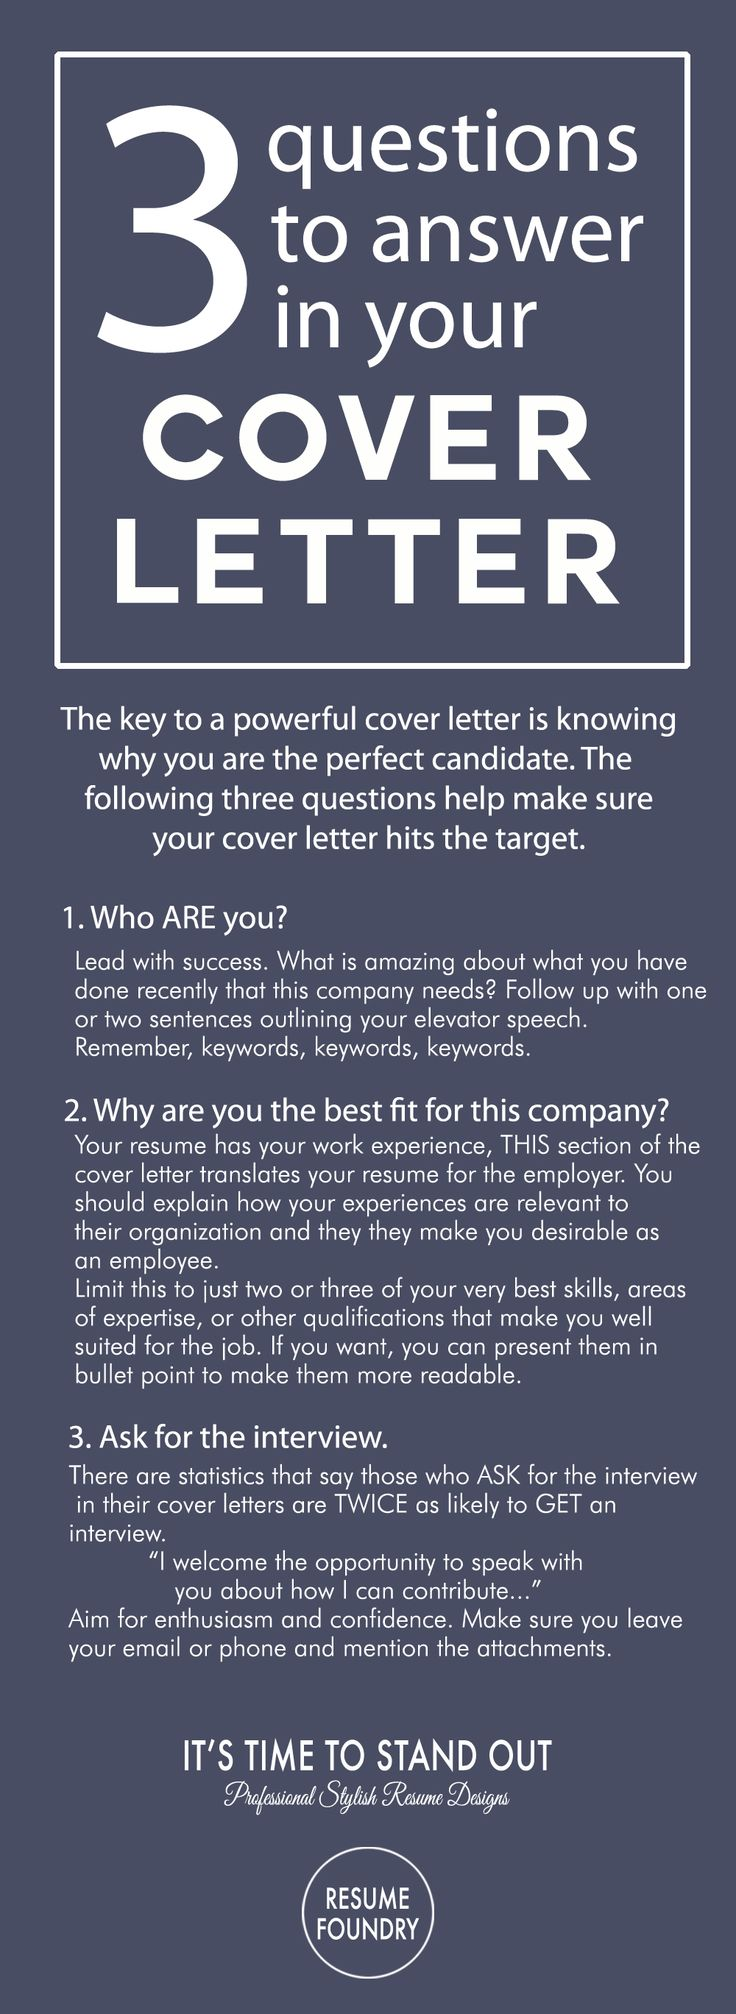 Cover Letter Tips - Outline. How to write a cover letter.                                                                                                                                                                                 More